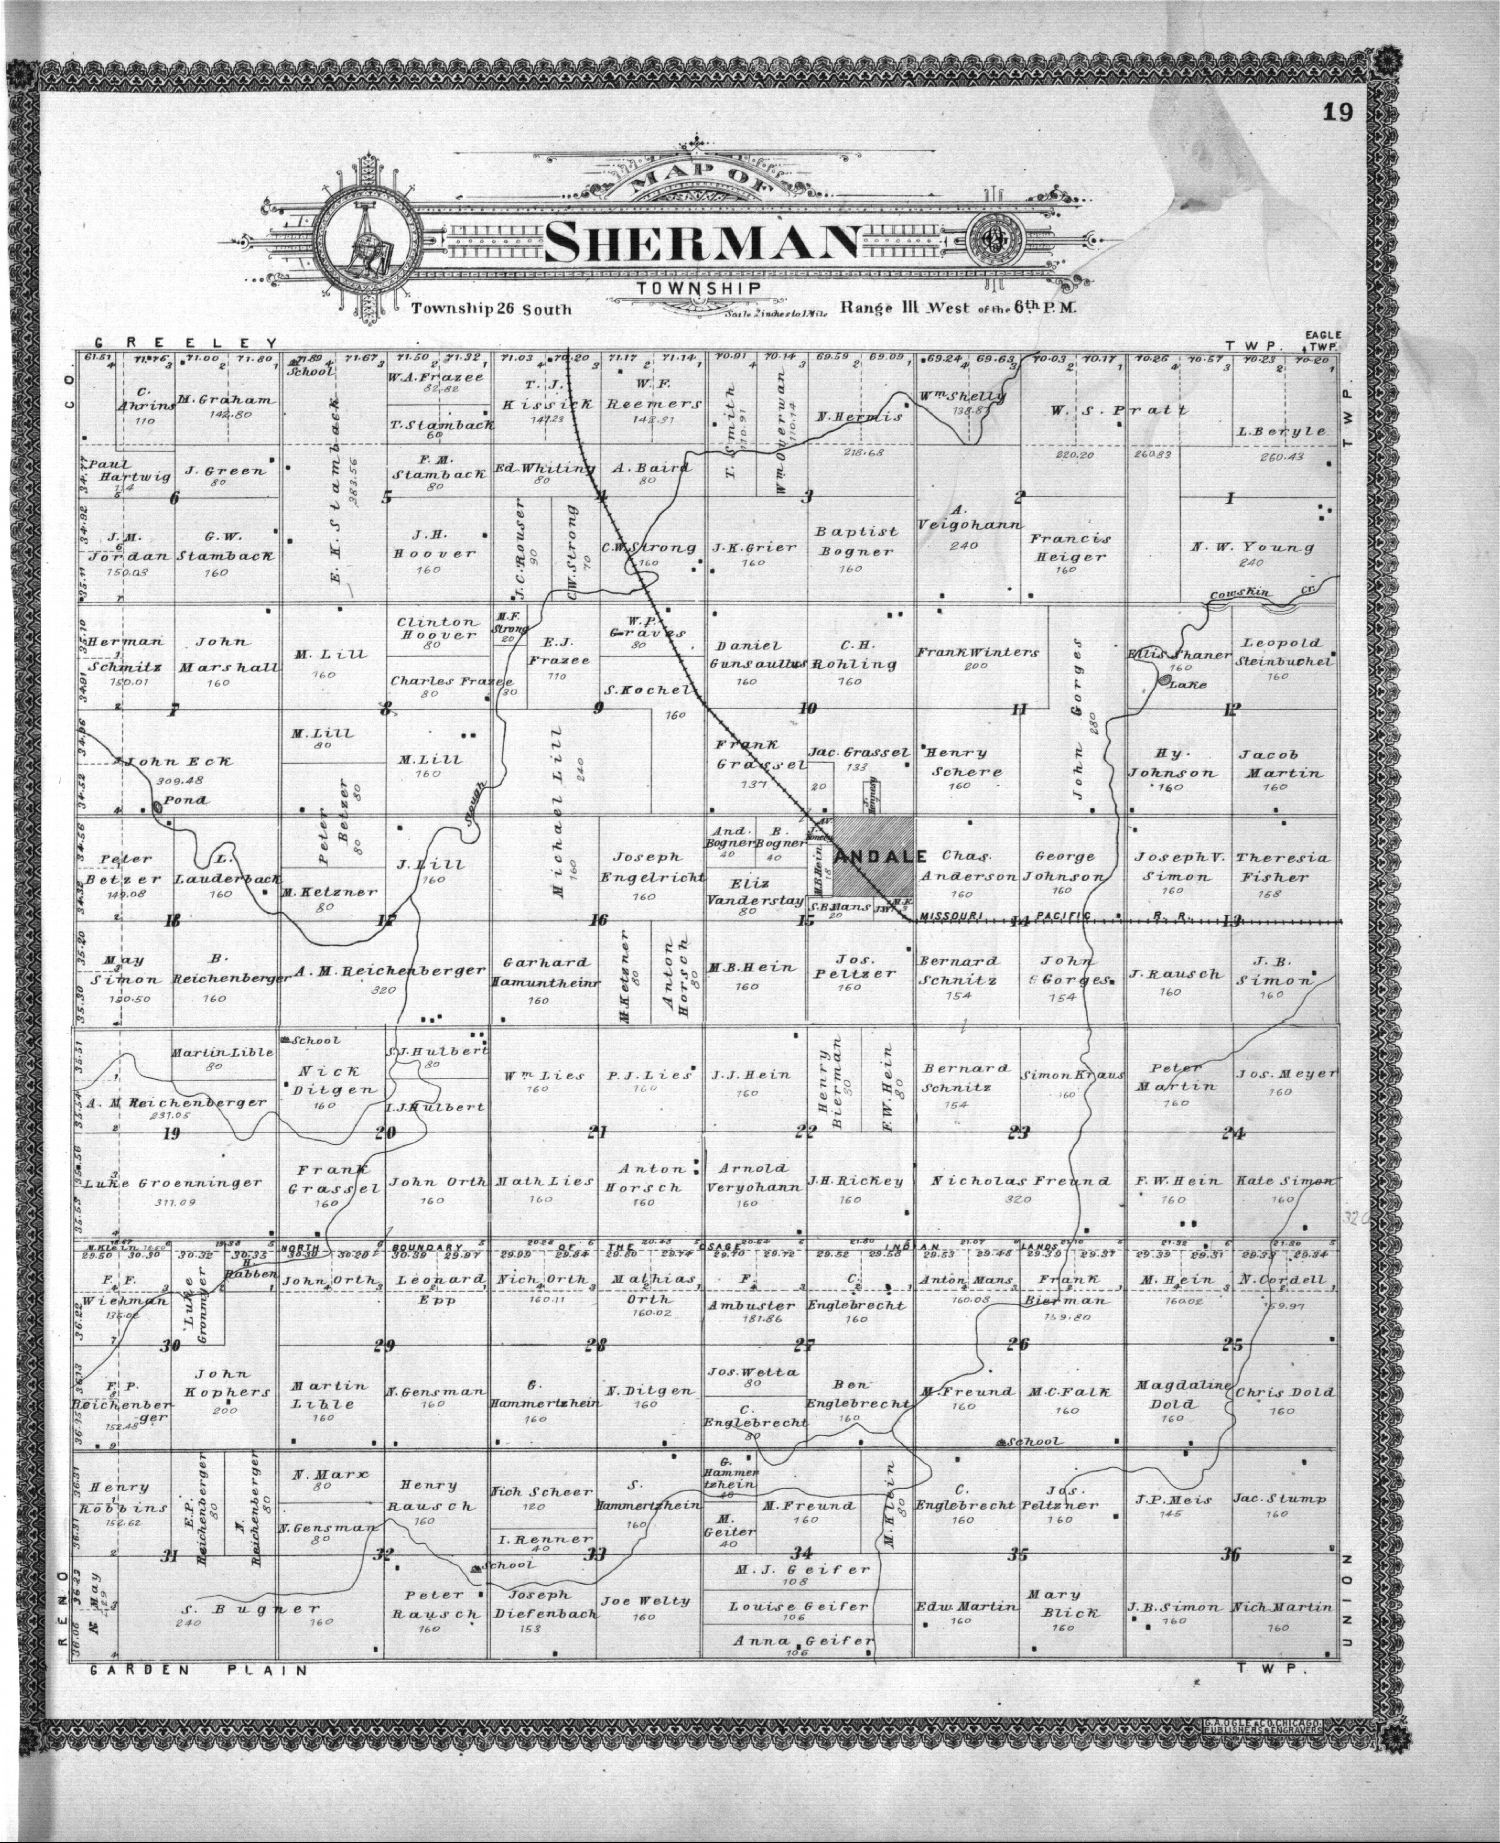 Standard atlas of Sedgwick County, Kansas - 19